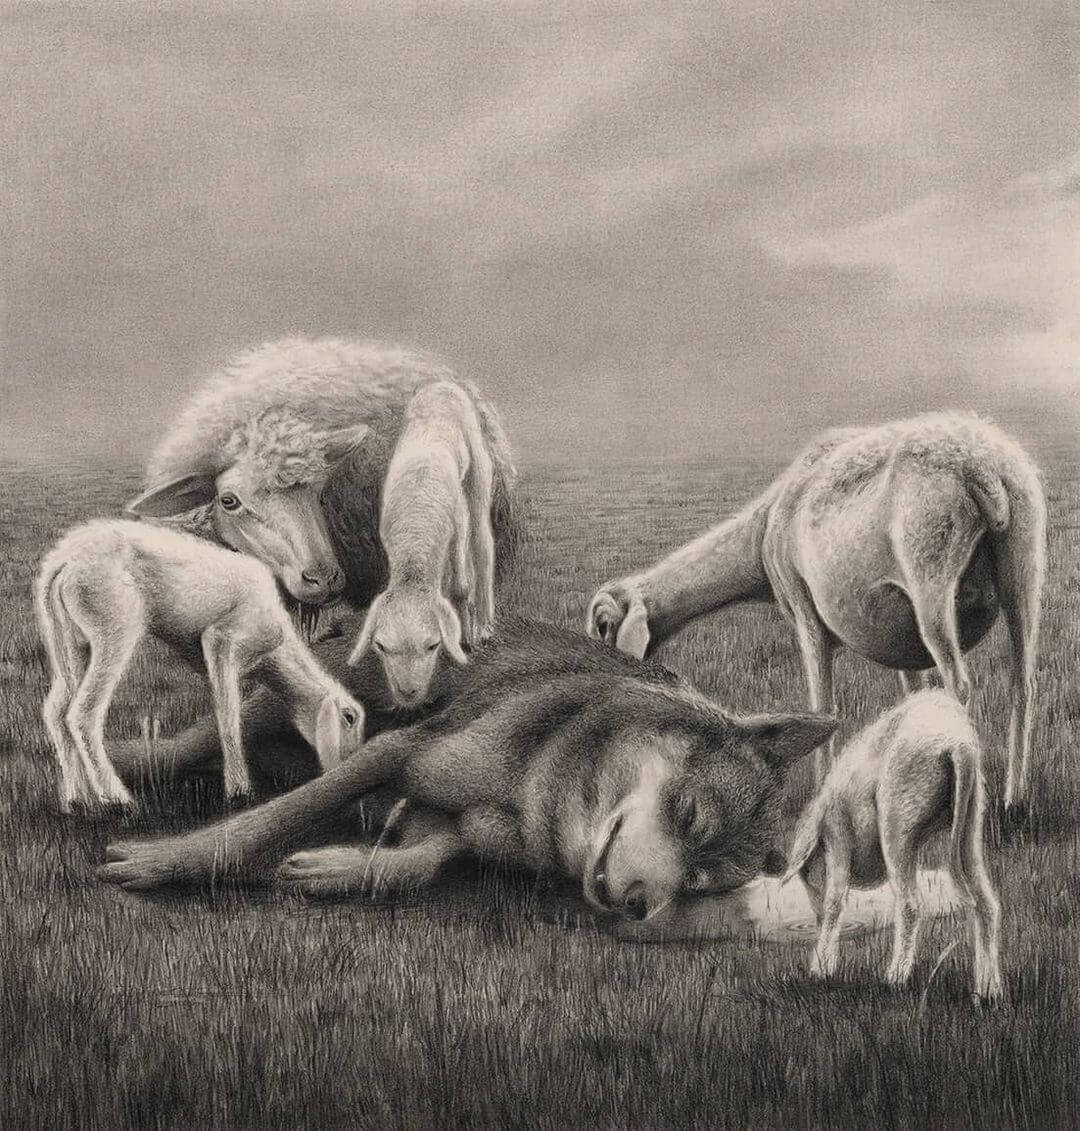 Graphite drawing of sheep feasting on a wolf by Carlos Fernández the Penrider